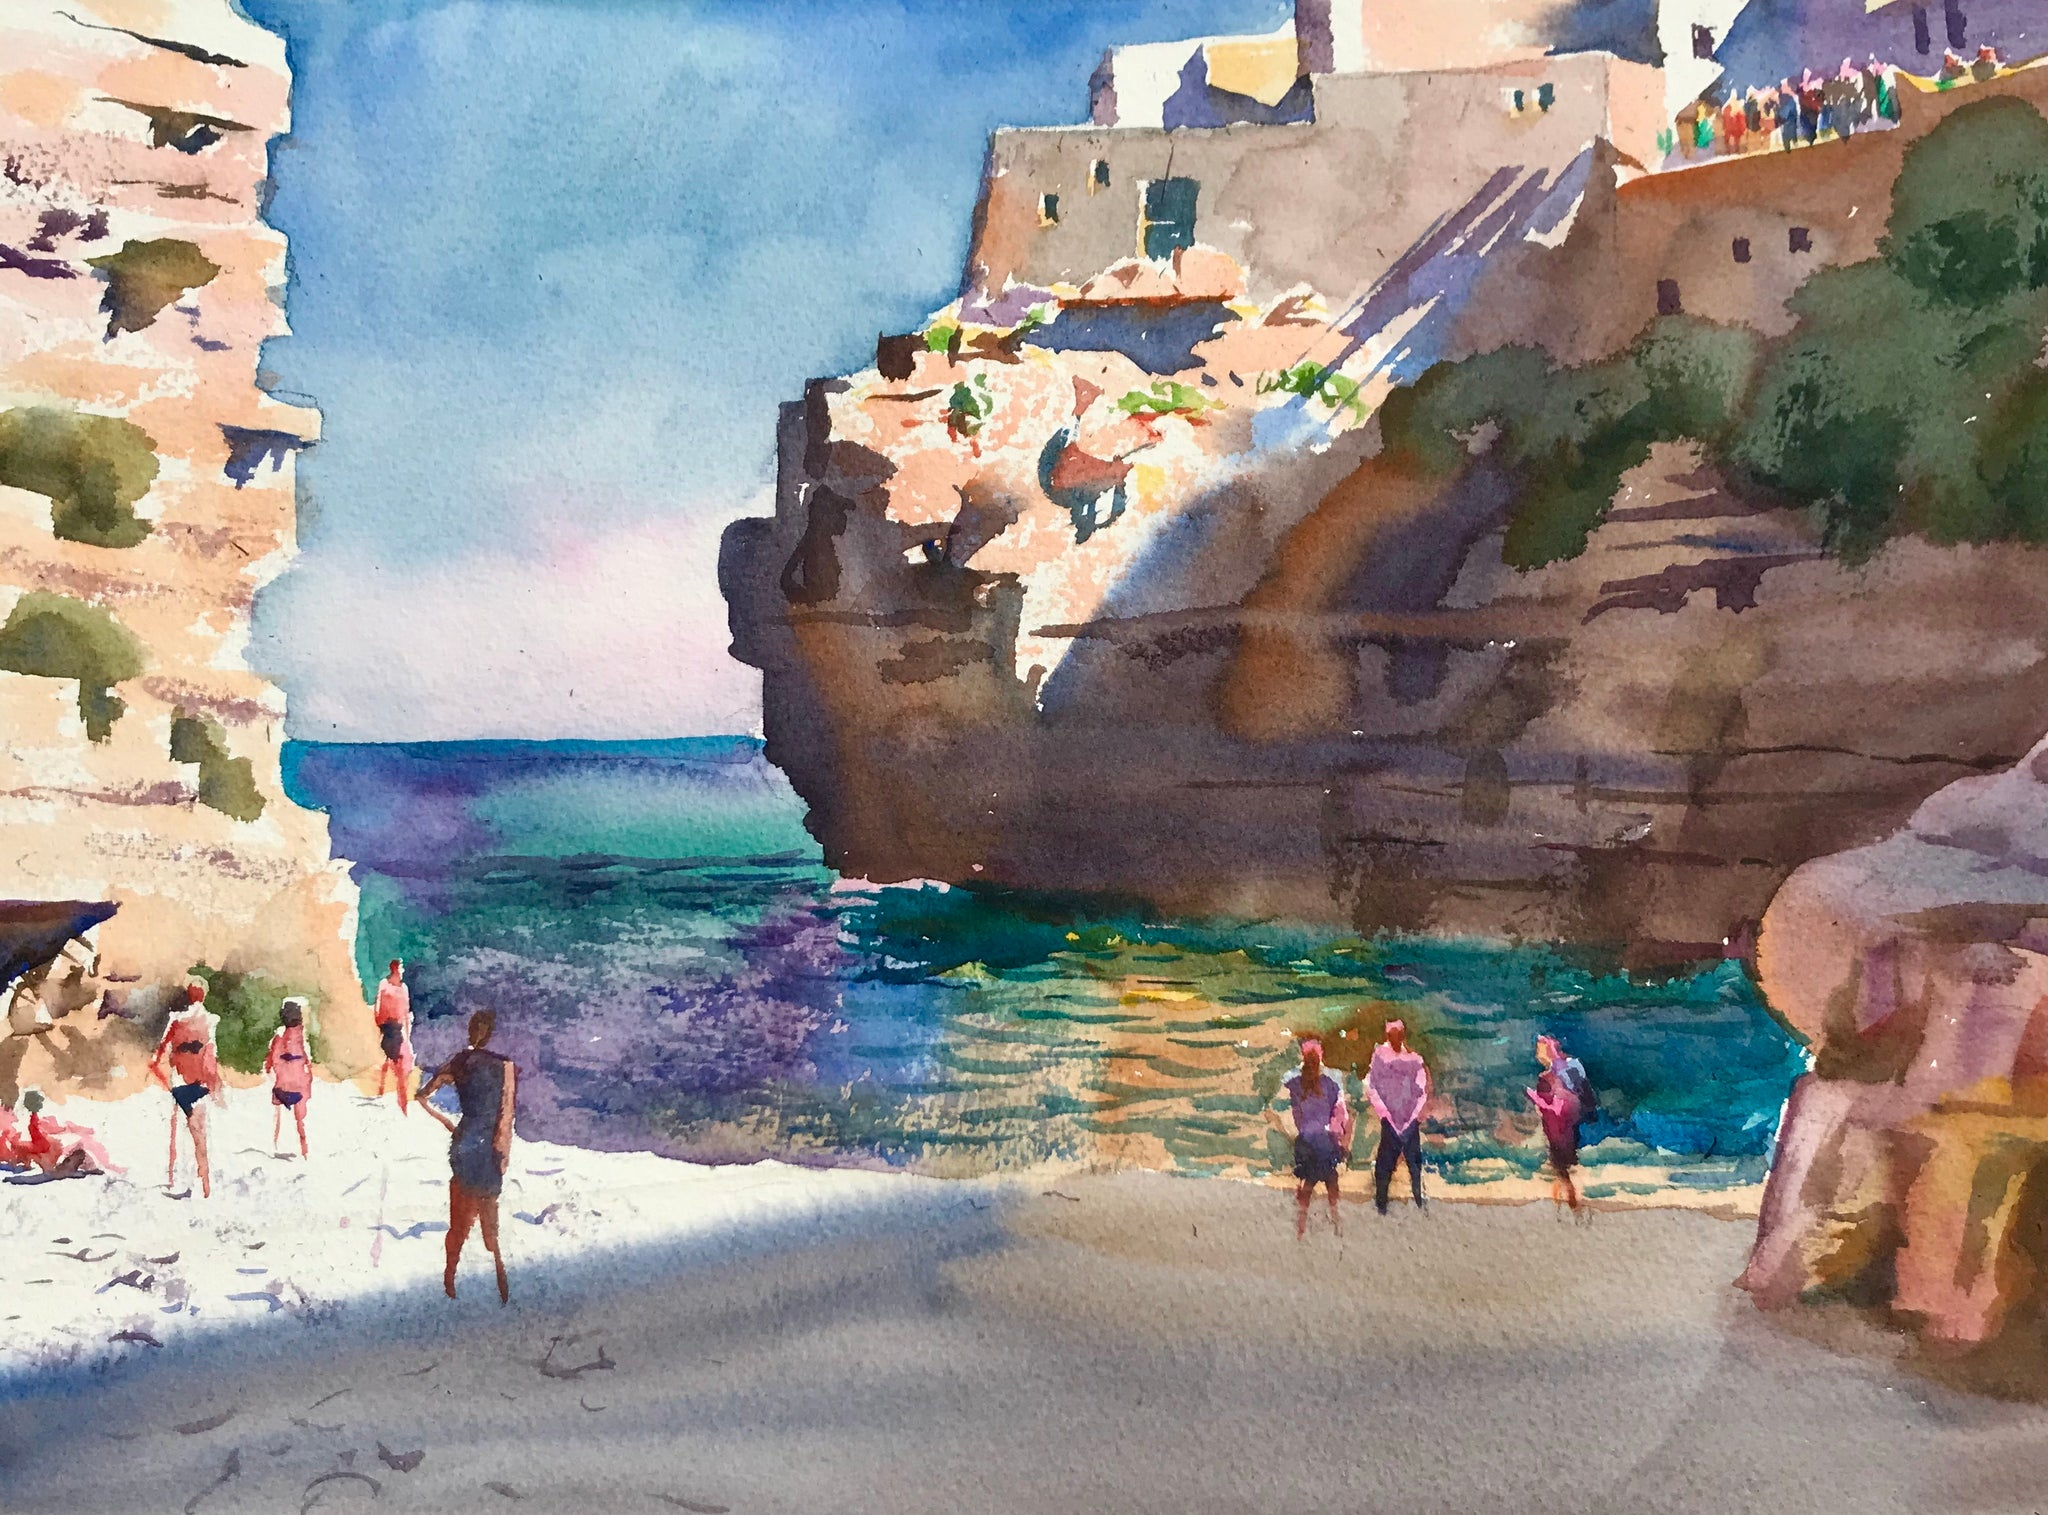 Sea, Rock, City | Polignano a Mare